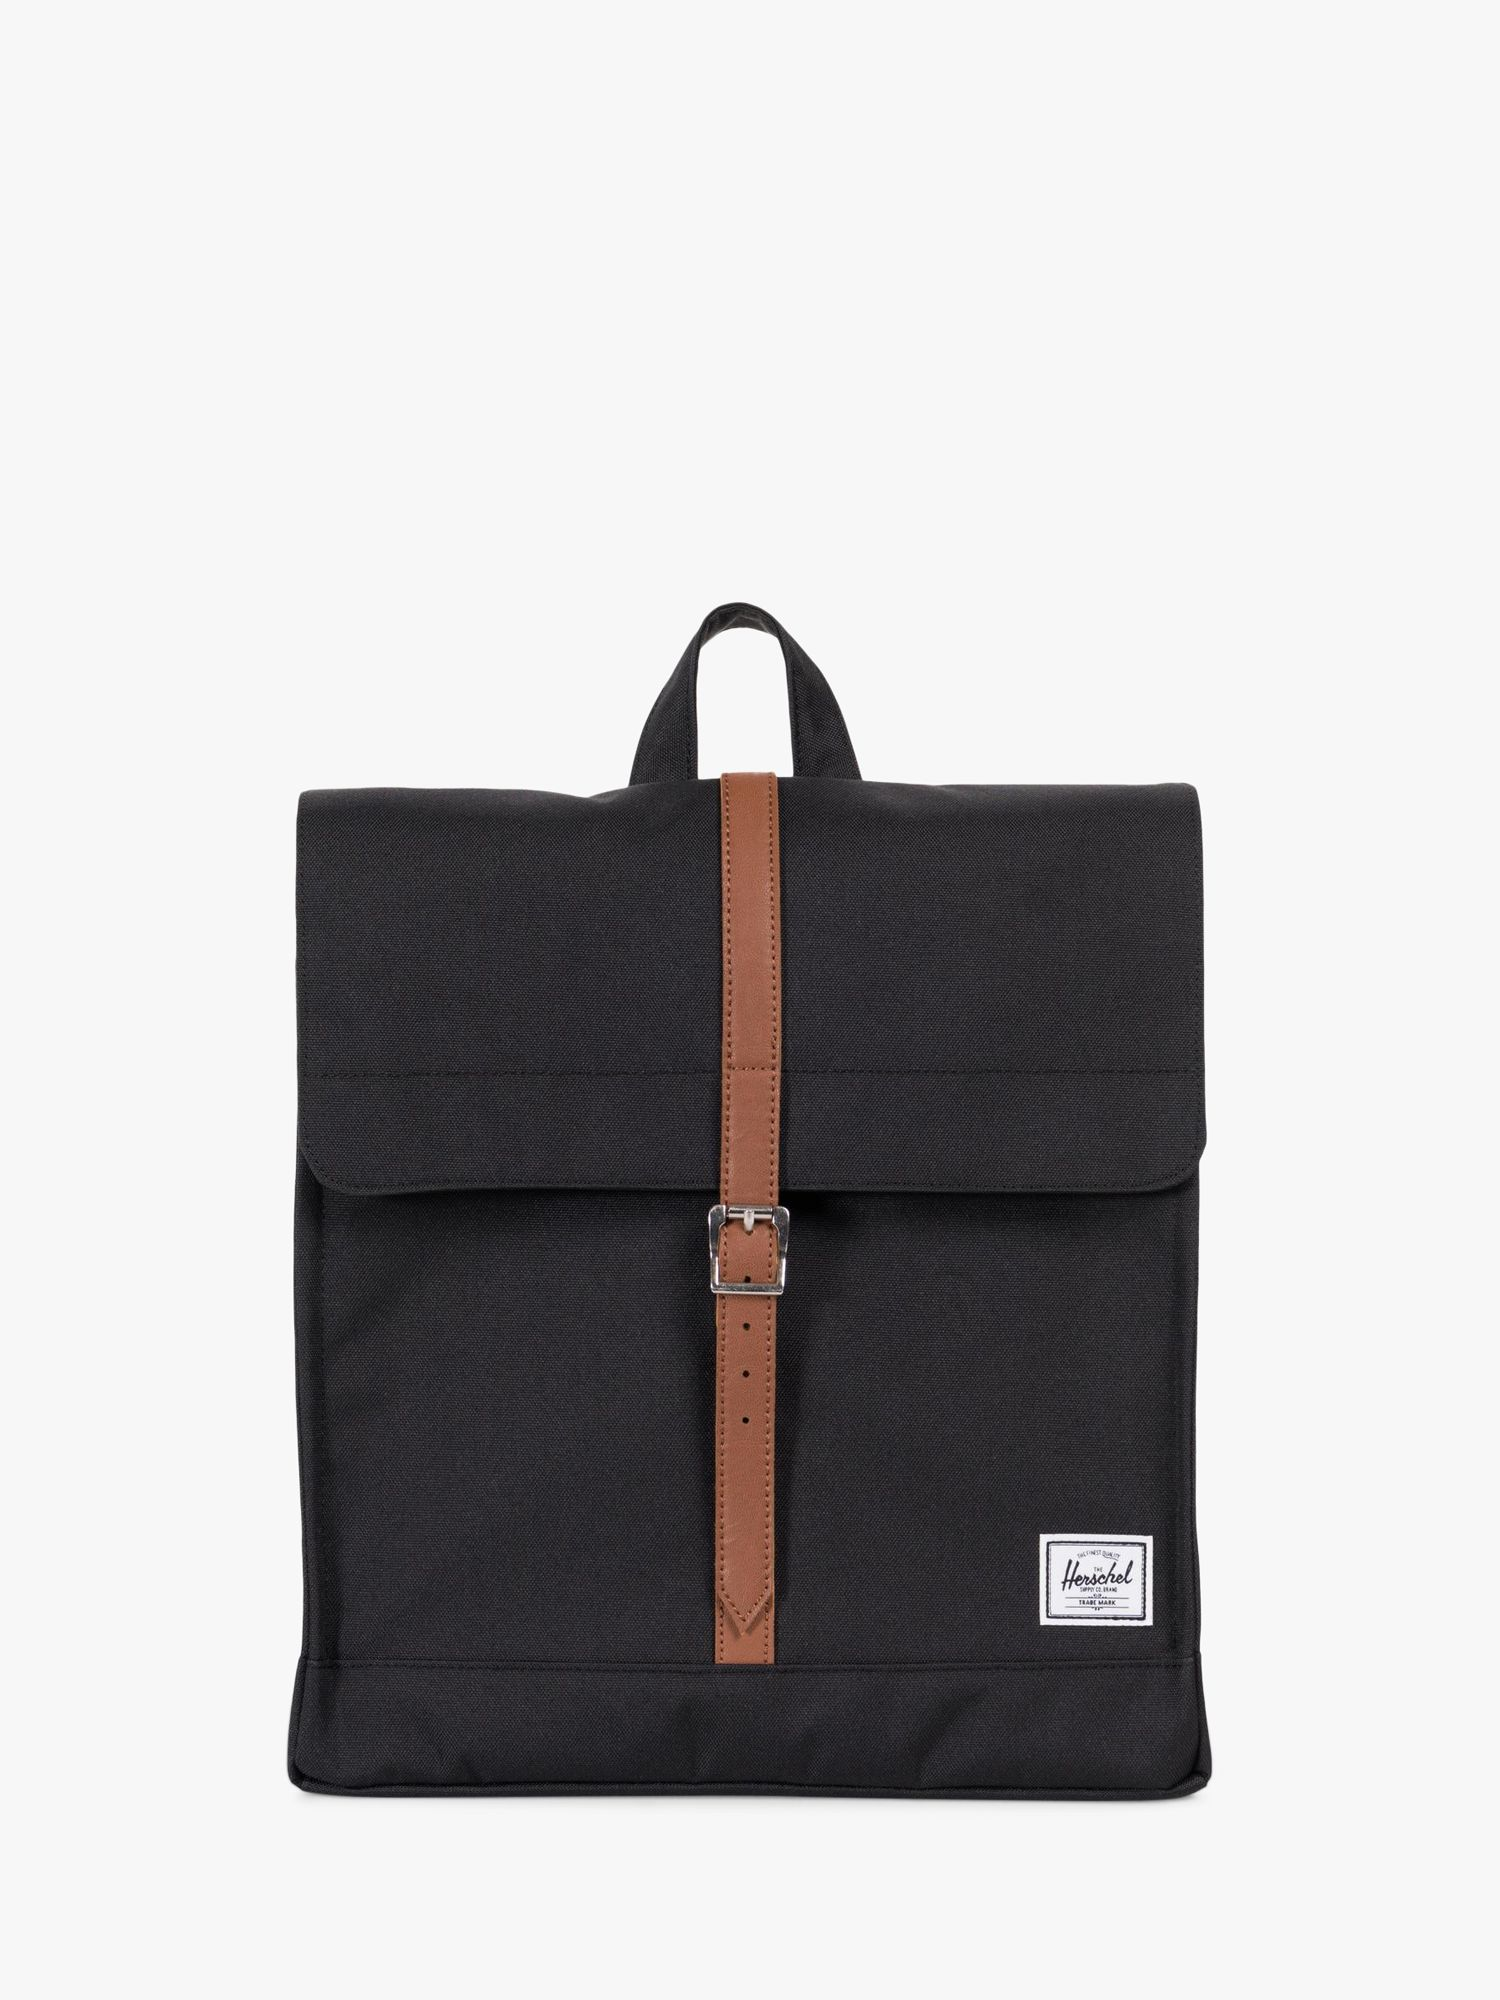 Herschel Supply Co. Herschel Supply Co. City Mid-Volume Backpack, Black/Tan